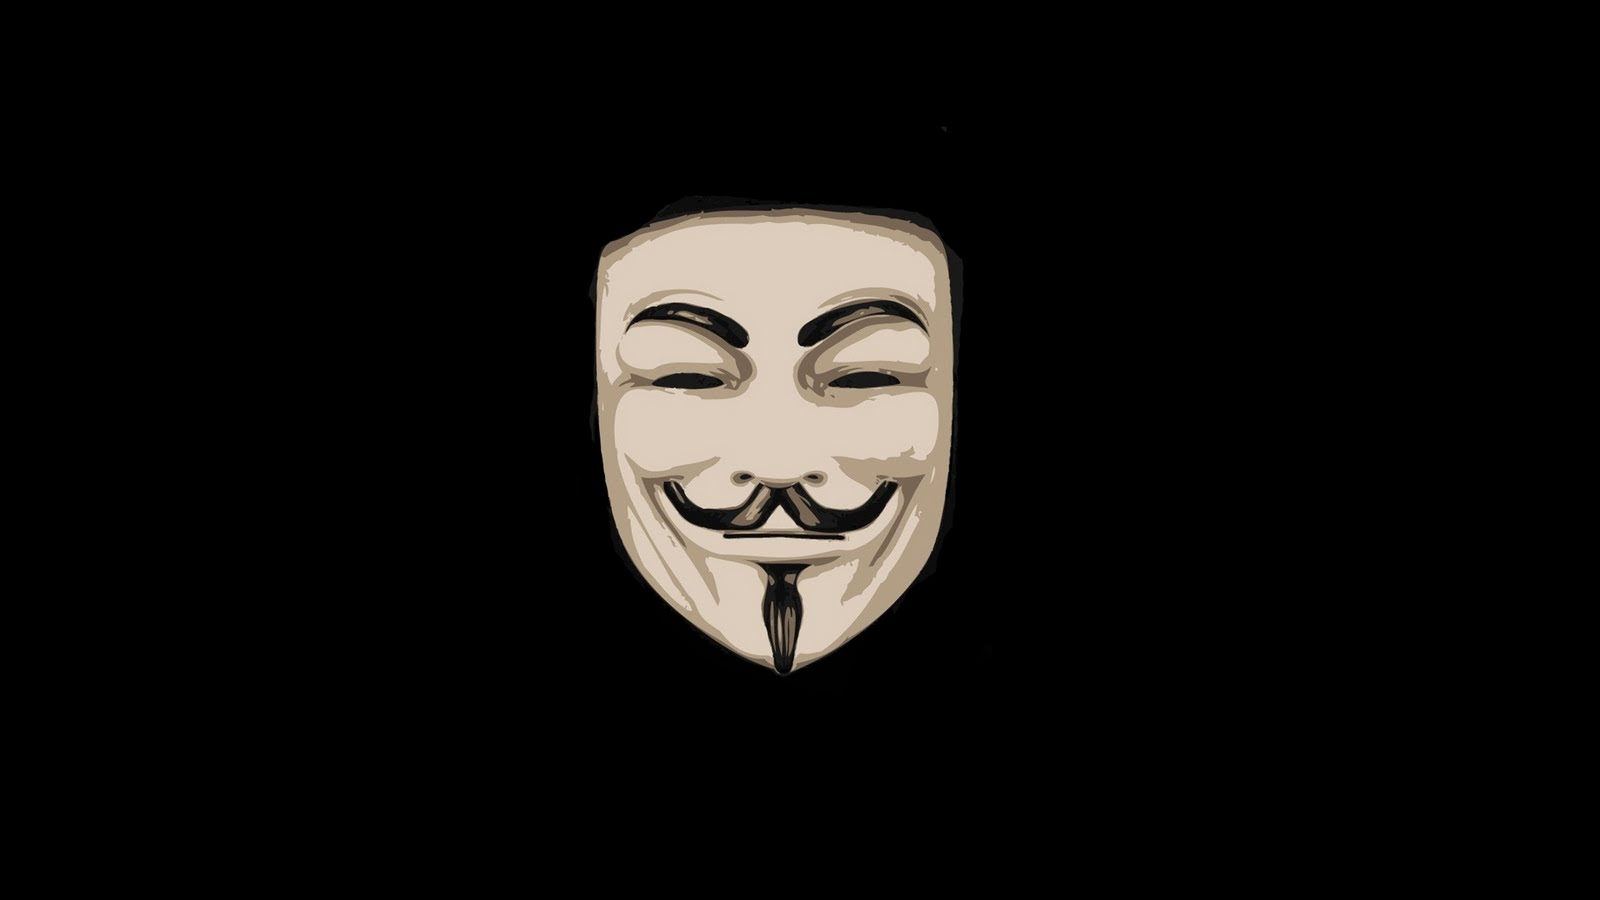 http://2.bp.blogspot.com/-nuZAyaF5TqI/TlrL7P8T0tI/AAAAAAAAAug/humDZDtG_7M/s1600/masks_guy_fawkes_anonymous_V_for_vendetta_black_and_white_logo_poster_www.Vvallpaper.net.jpg